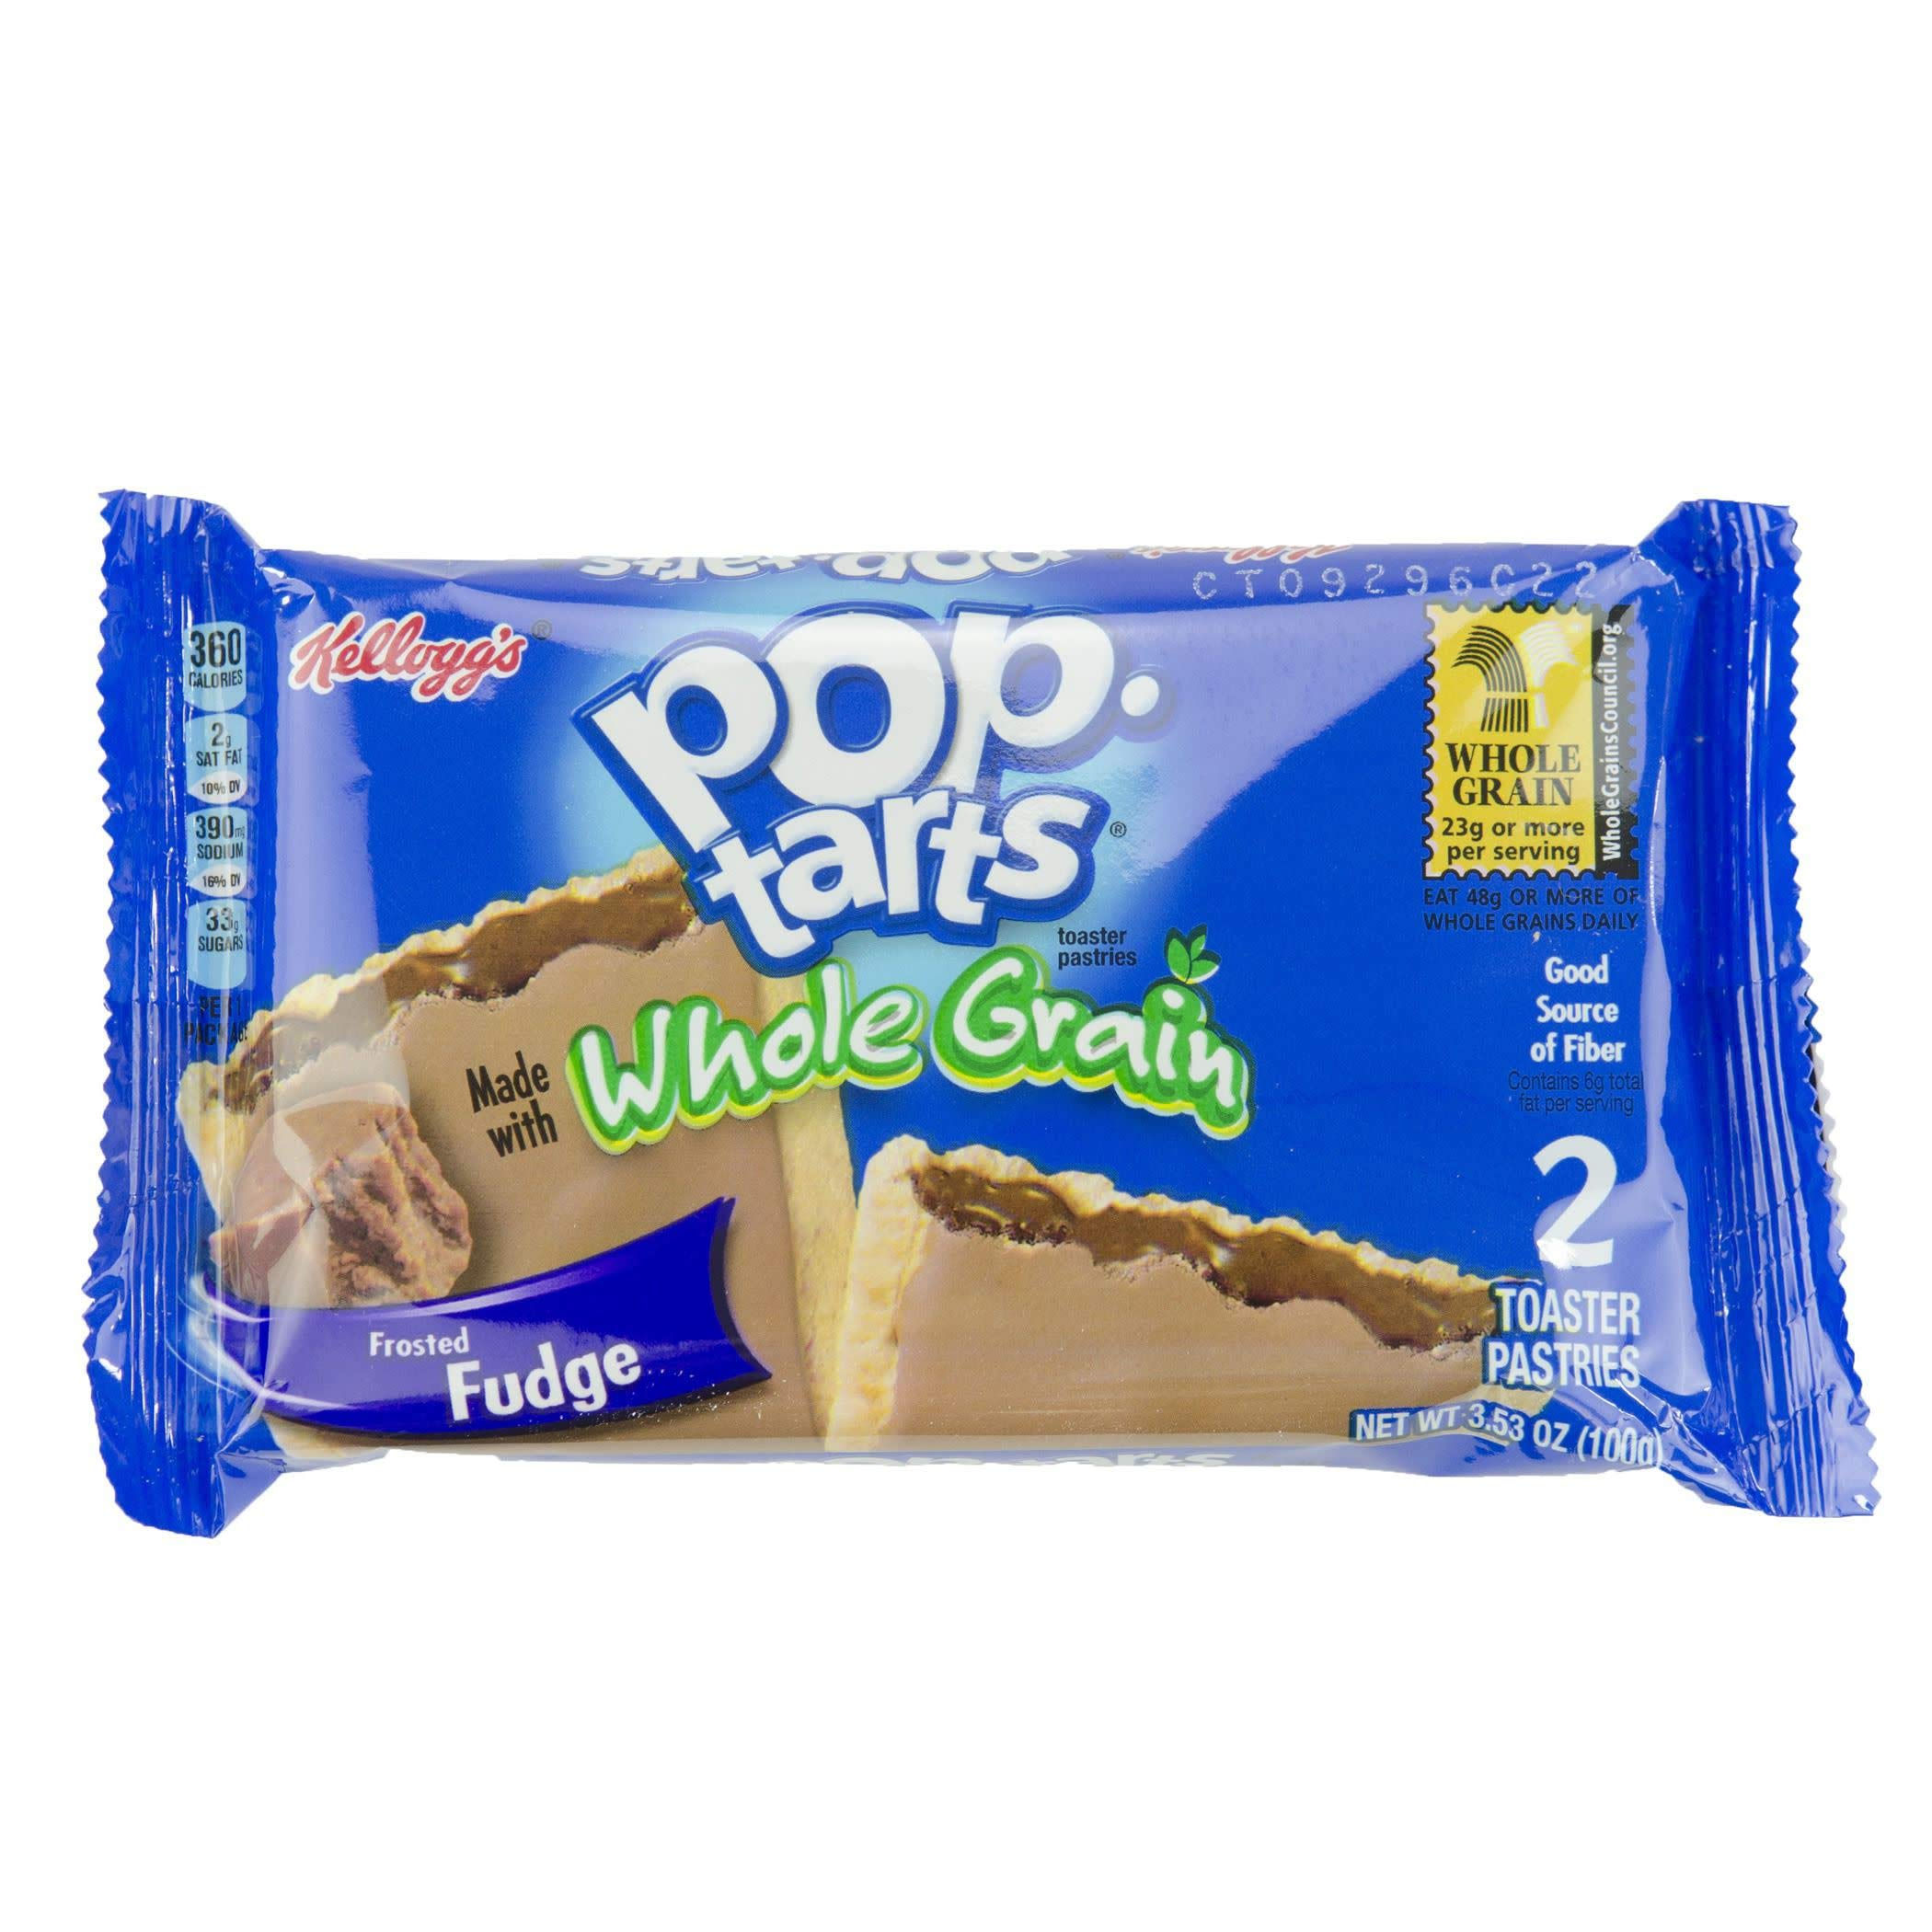 Kellogg's Pop-Tarts Frosted Toaster Pastries, Frosted Fudge, 72 Count by Pop-Tarts (Image #1)